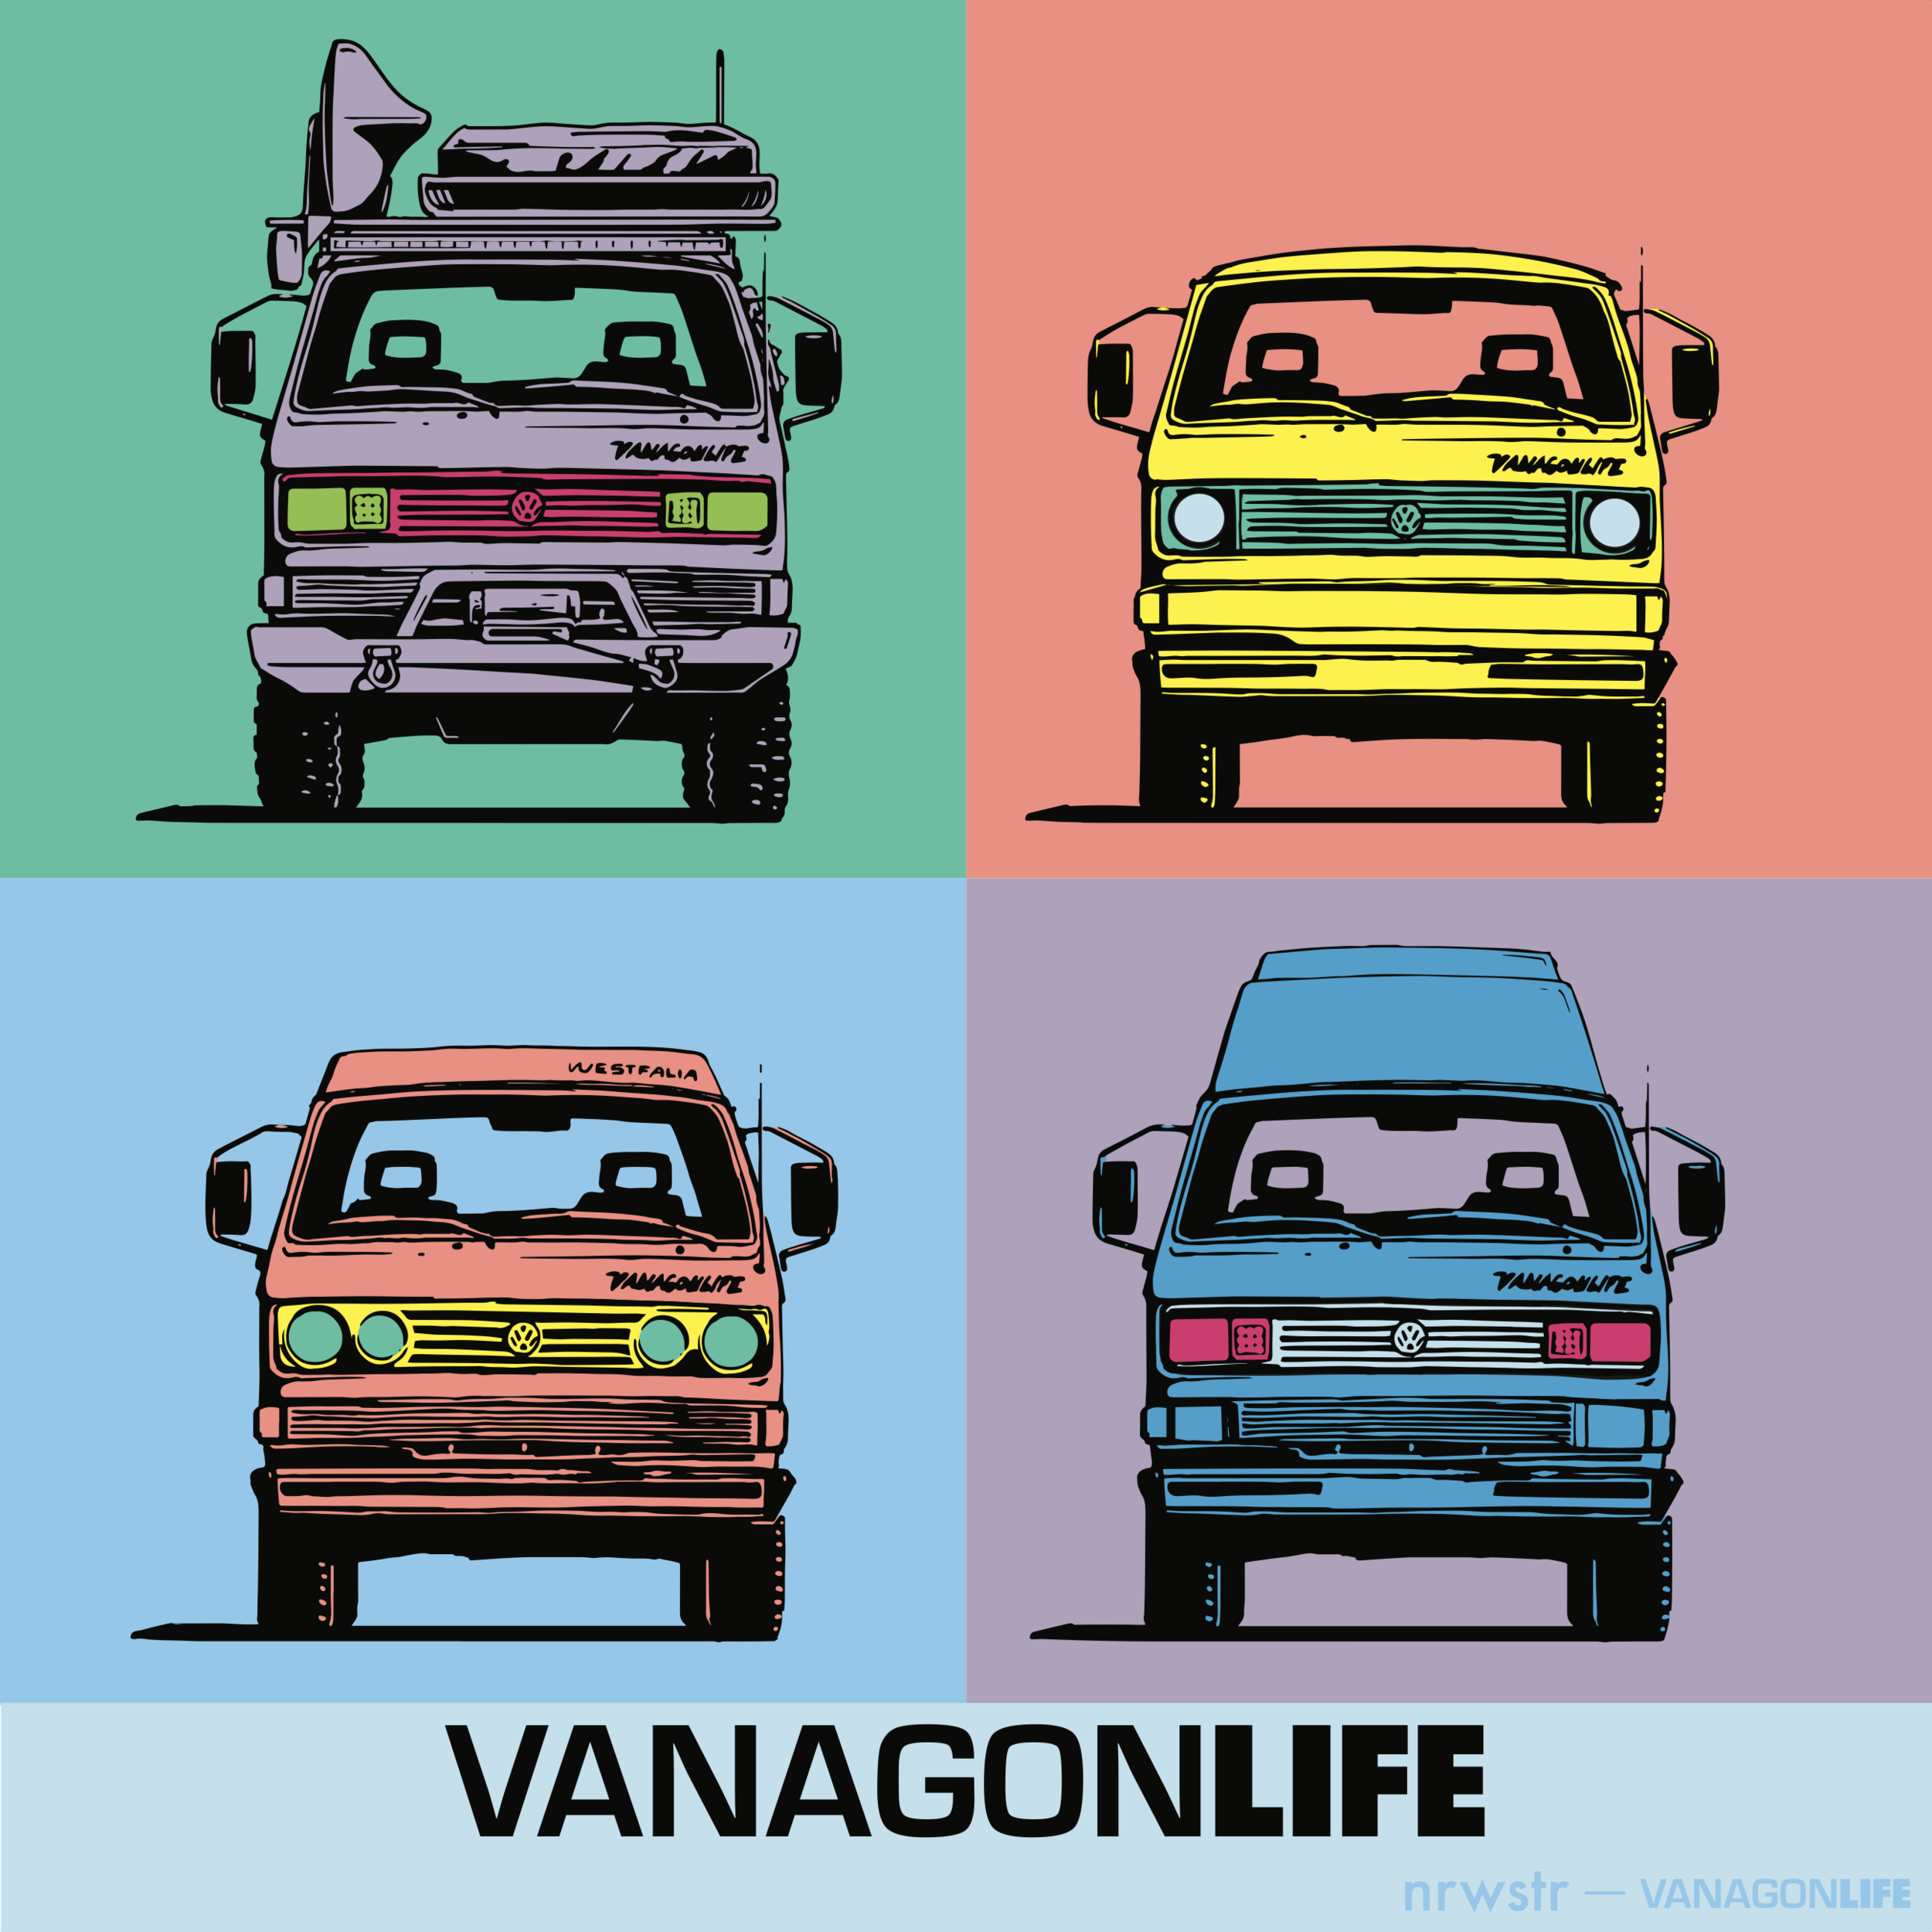 vandy warhol decal-final-pantone matched.png